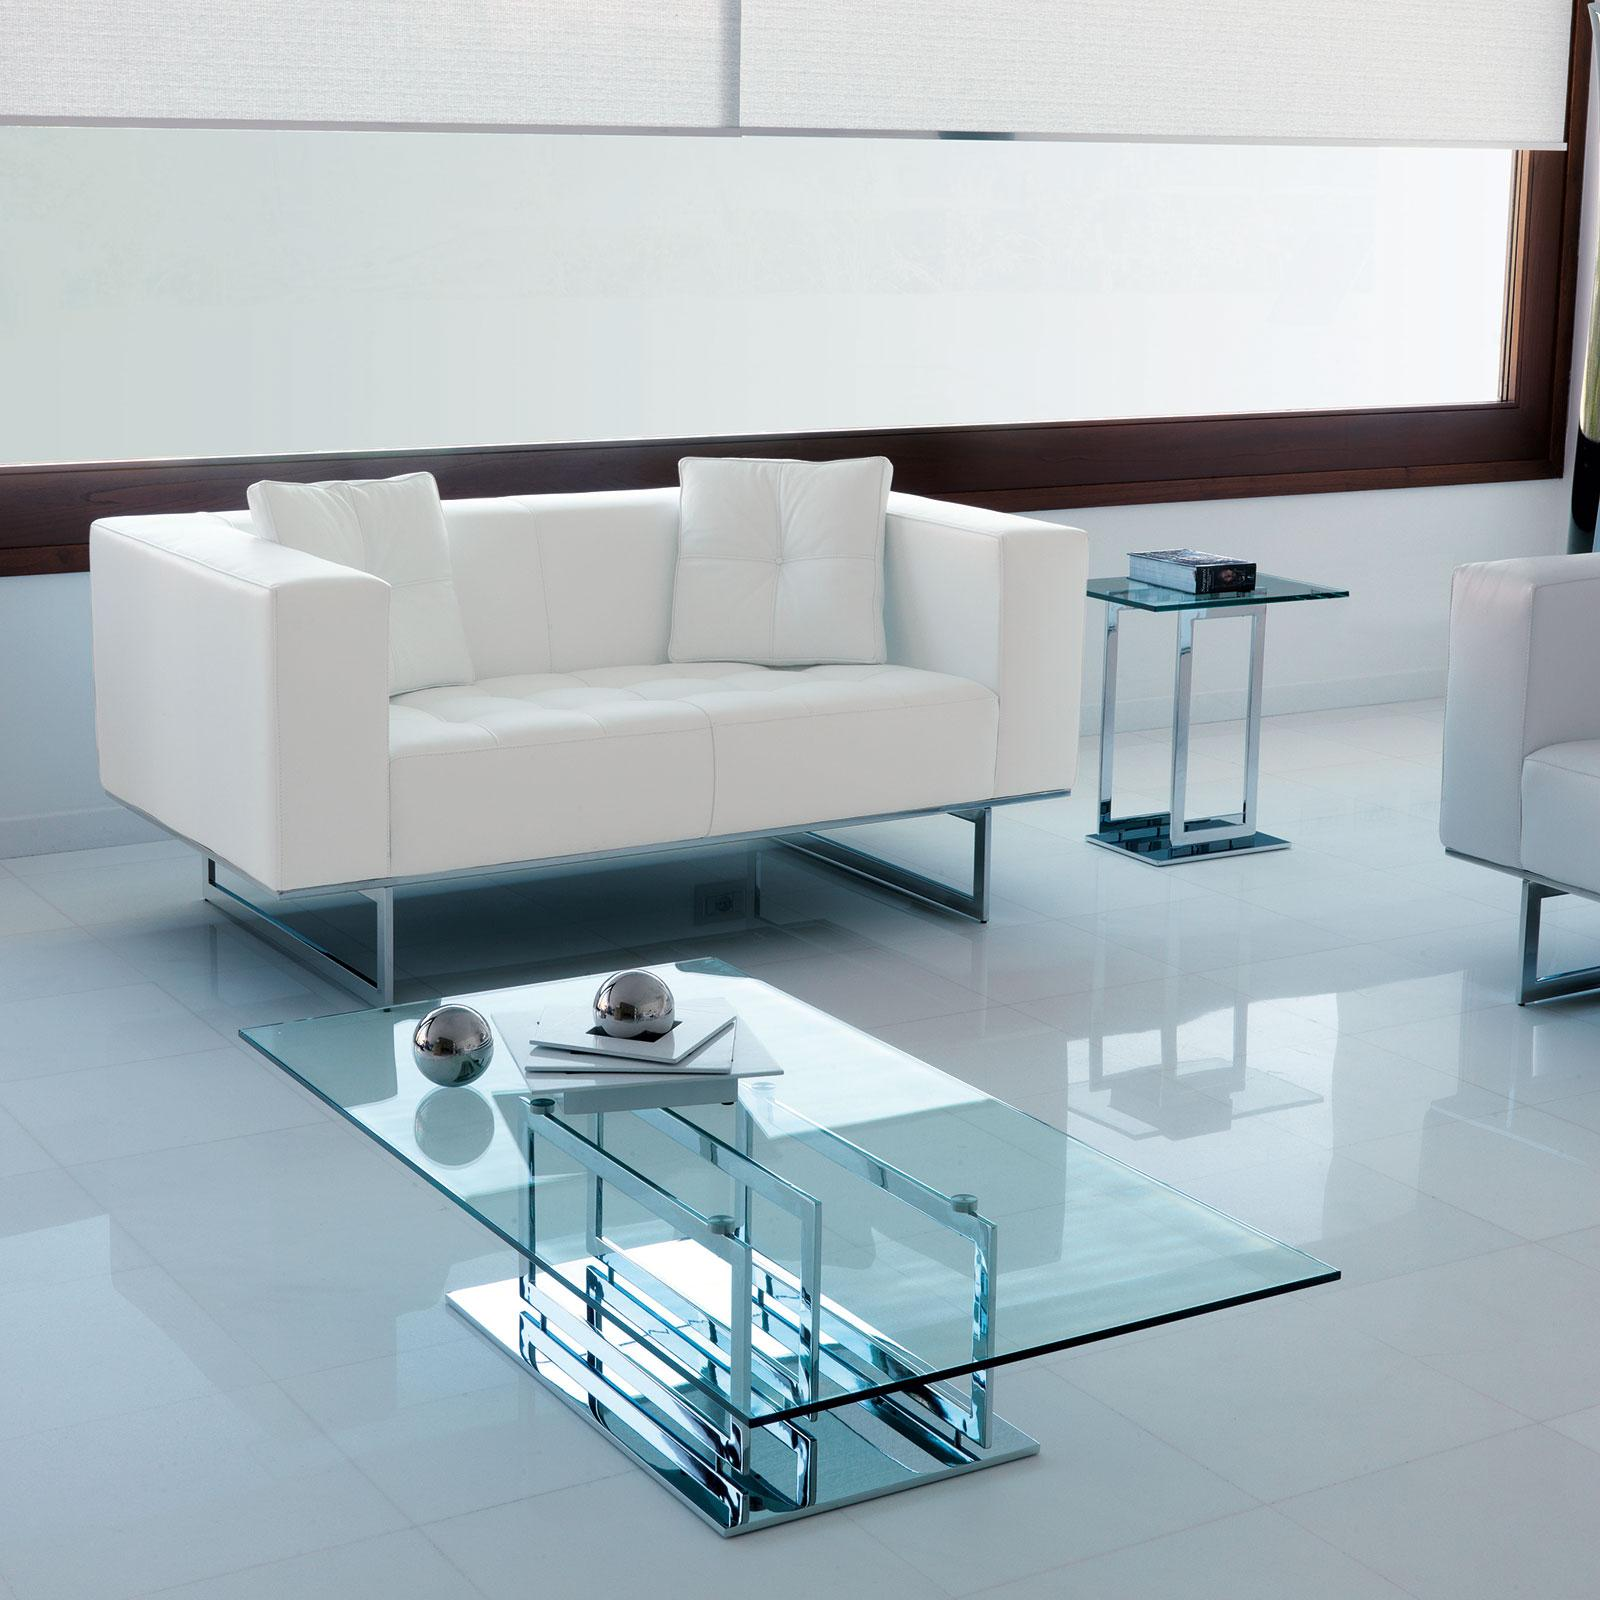 Excelsior Glass and Metal Luxury Coffee Table